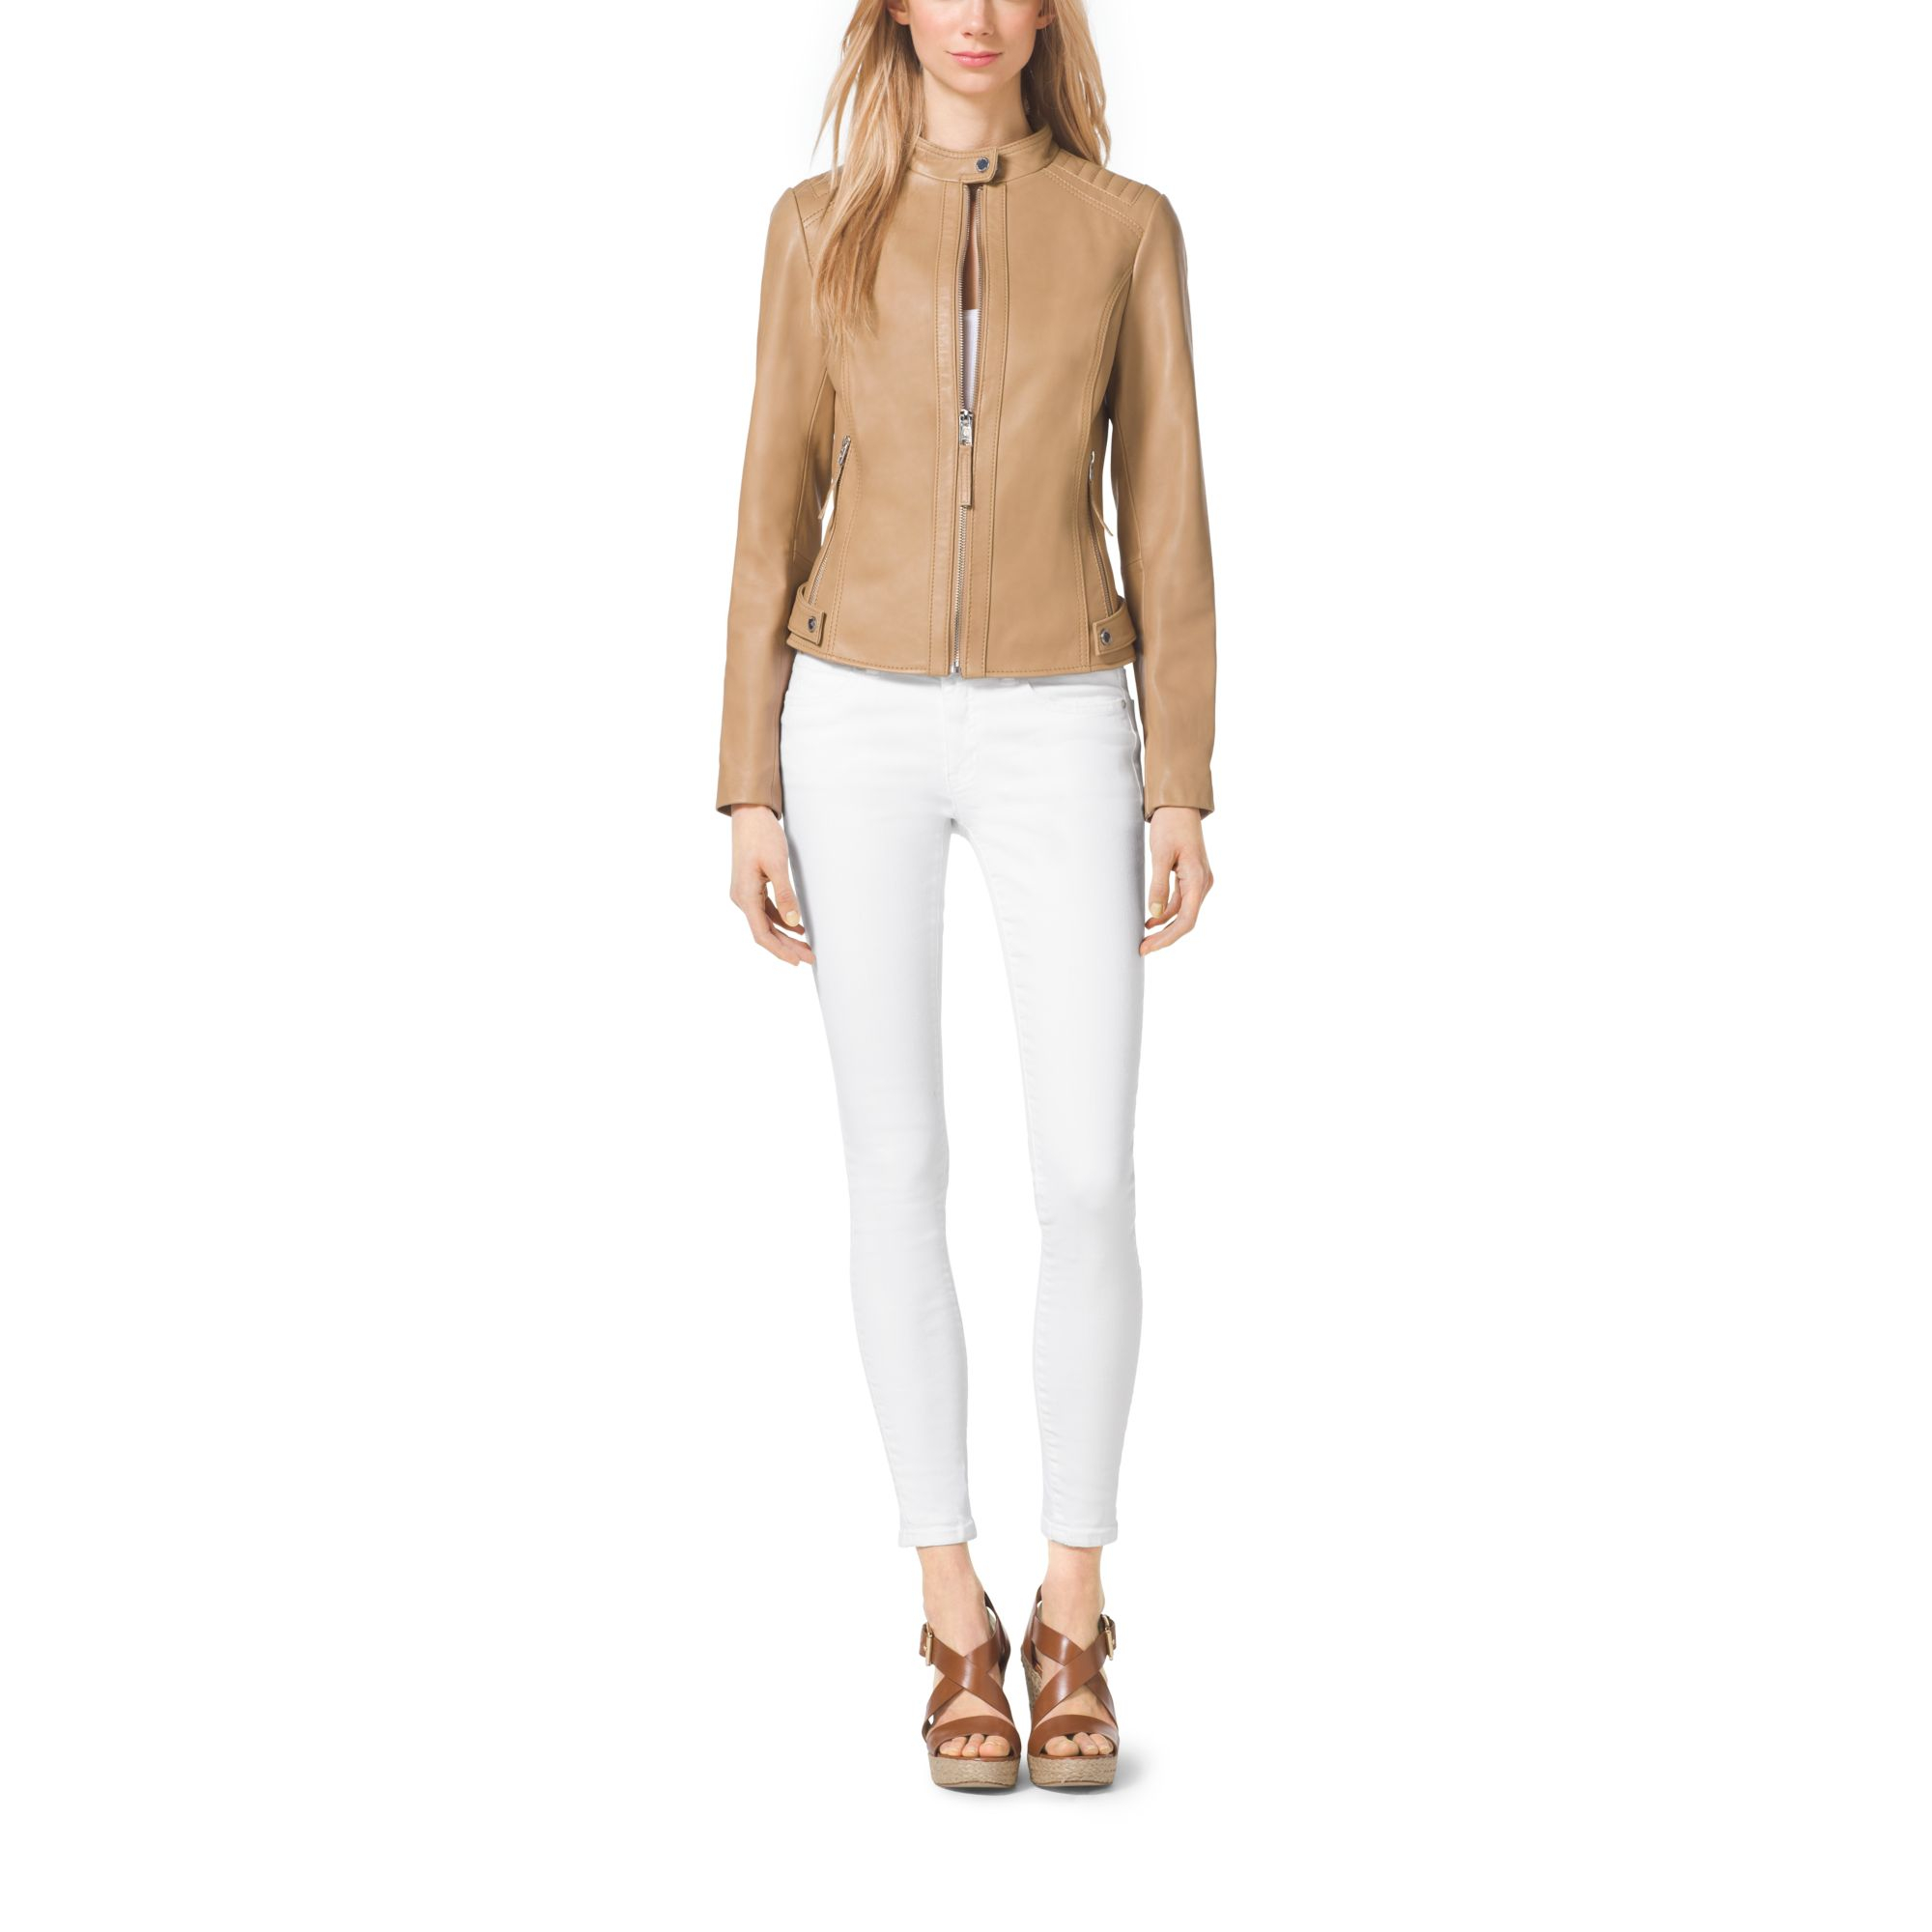 d99aa03af900e Lyst - Michael Kors Leather Jacket in Natural